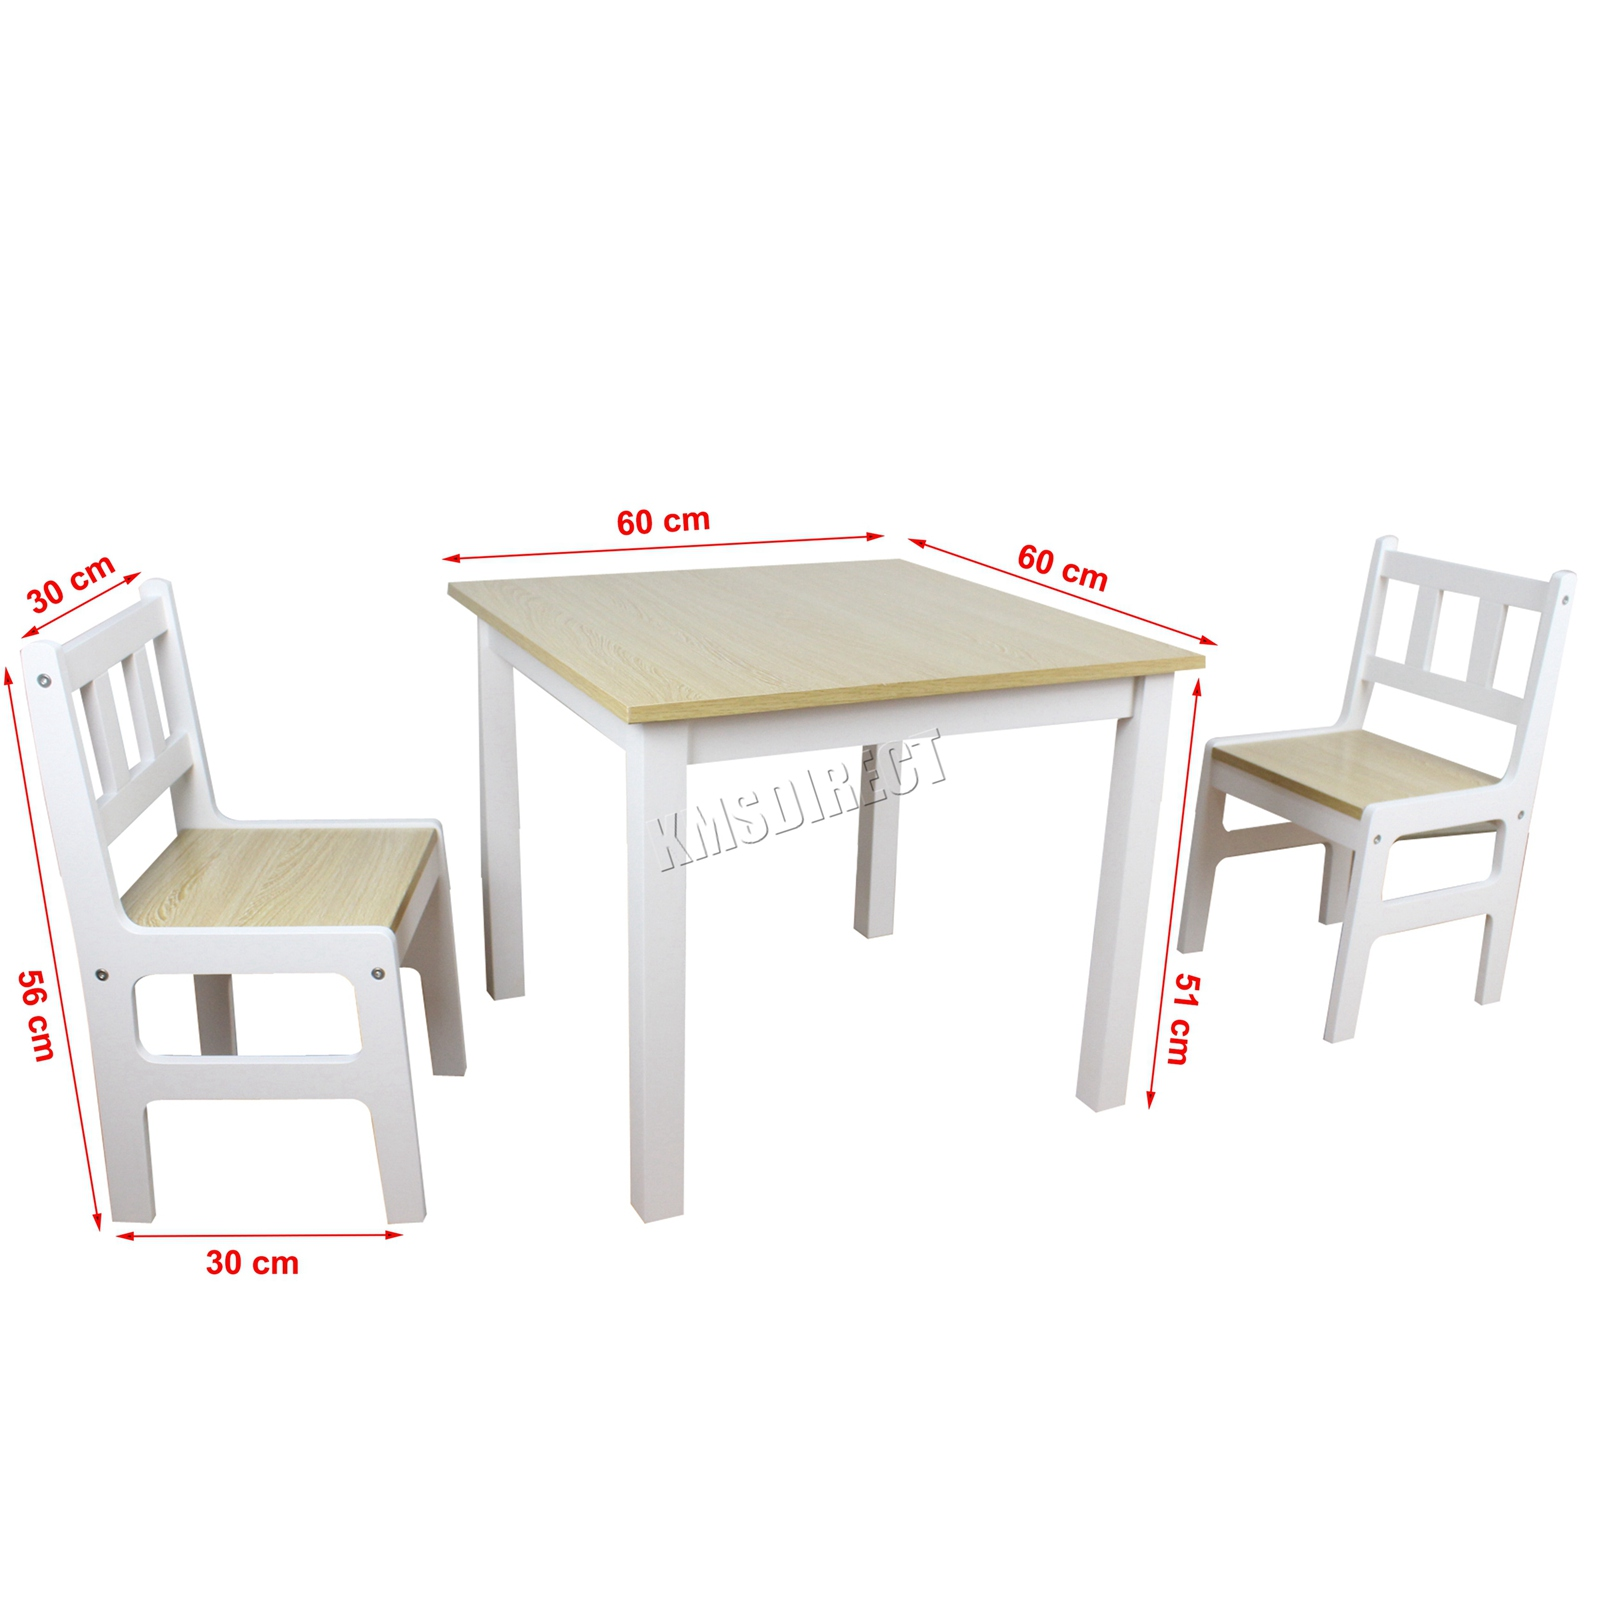 separation shoes 659b0 f11bf Details about FoxHunter Childrens Table And Chair Set - Kids Bedroom  Furniture Arts & Crafts